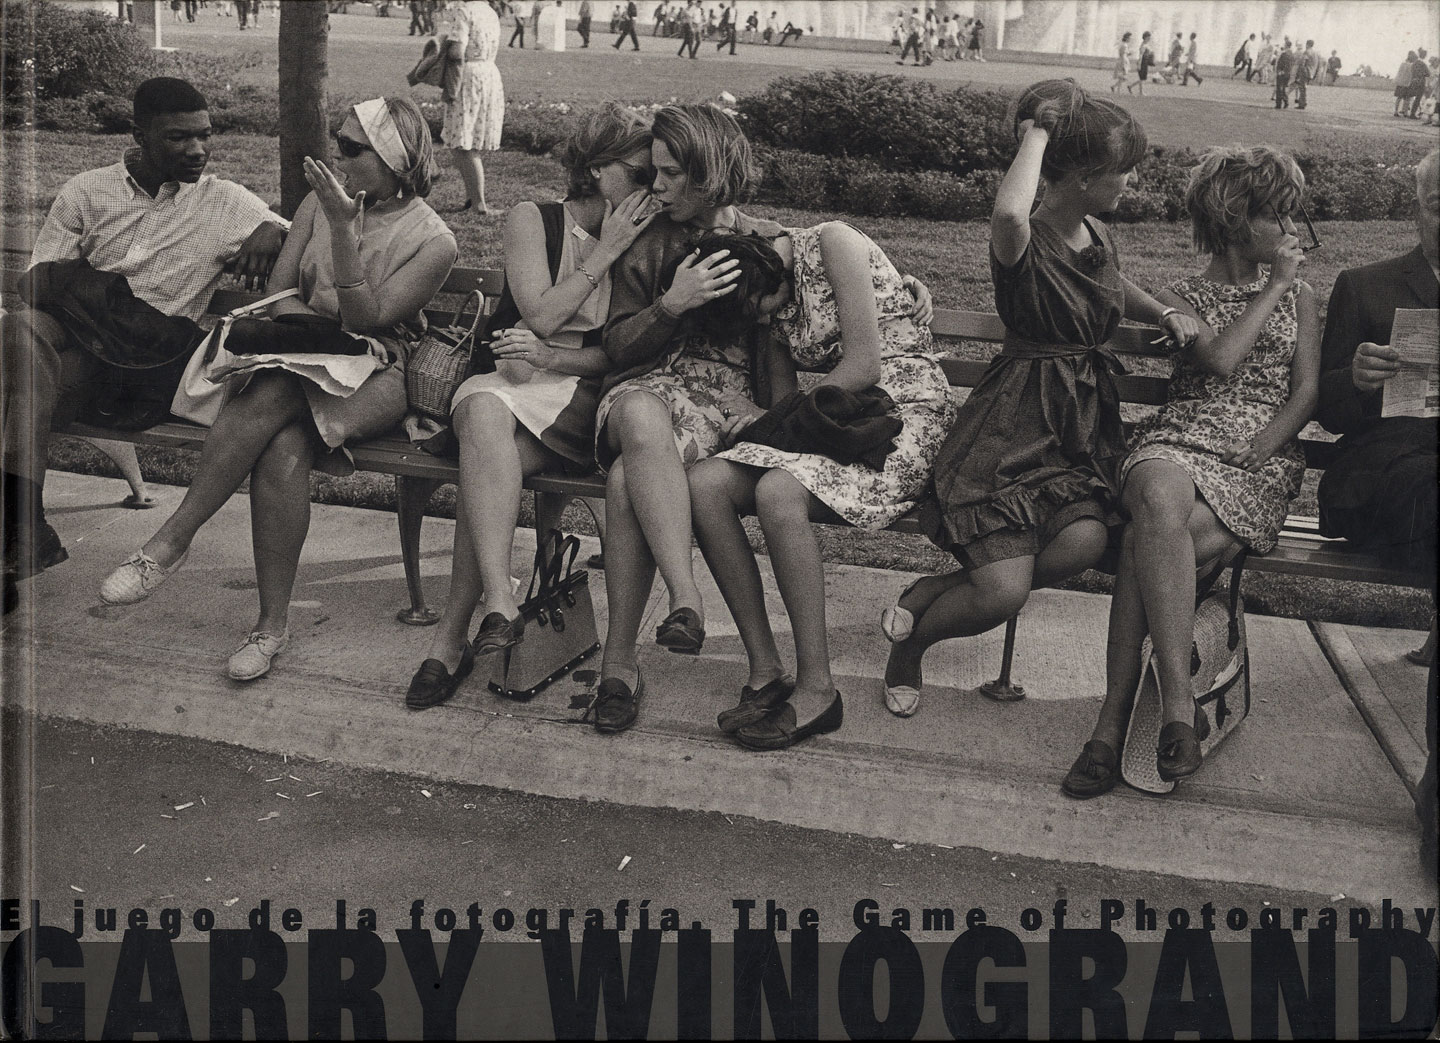 Garry Winogrand: El juego de la fotografía (The Game of Photography)